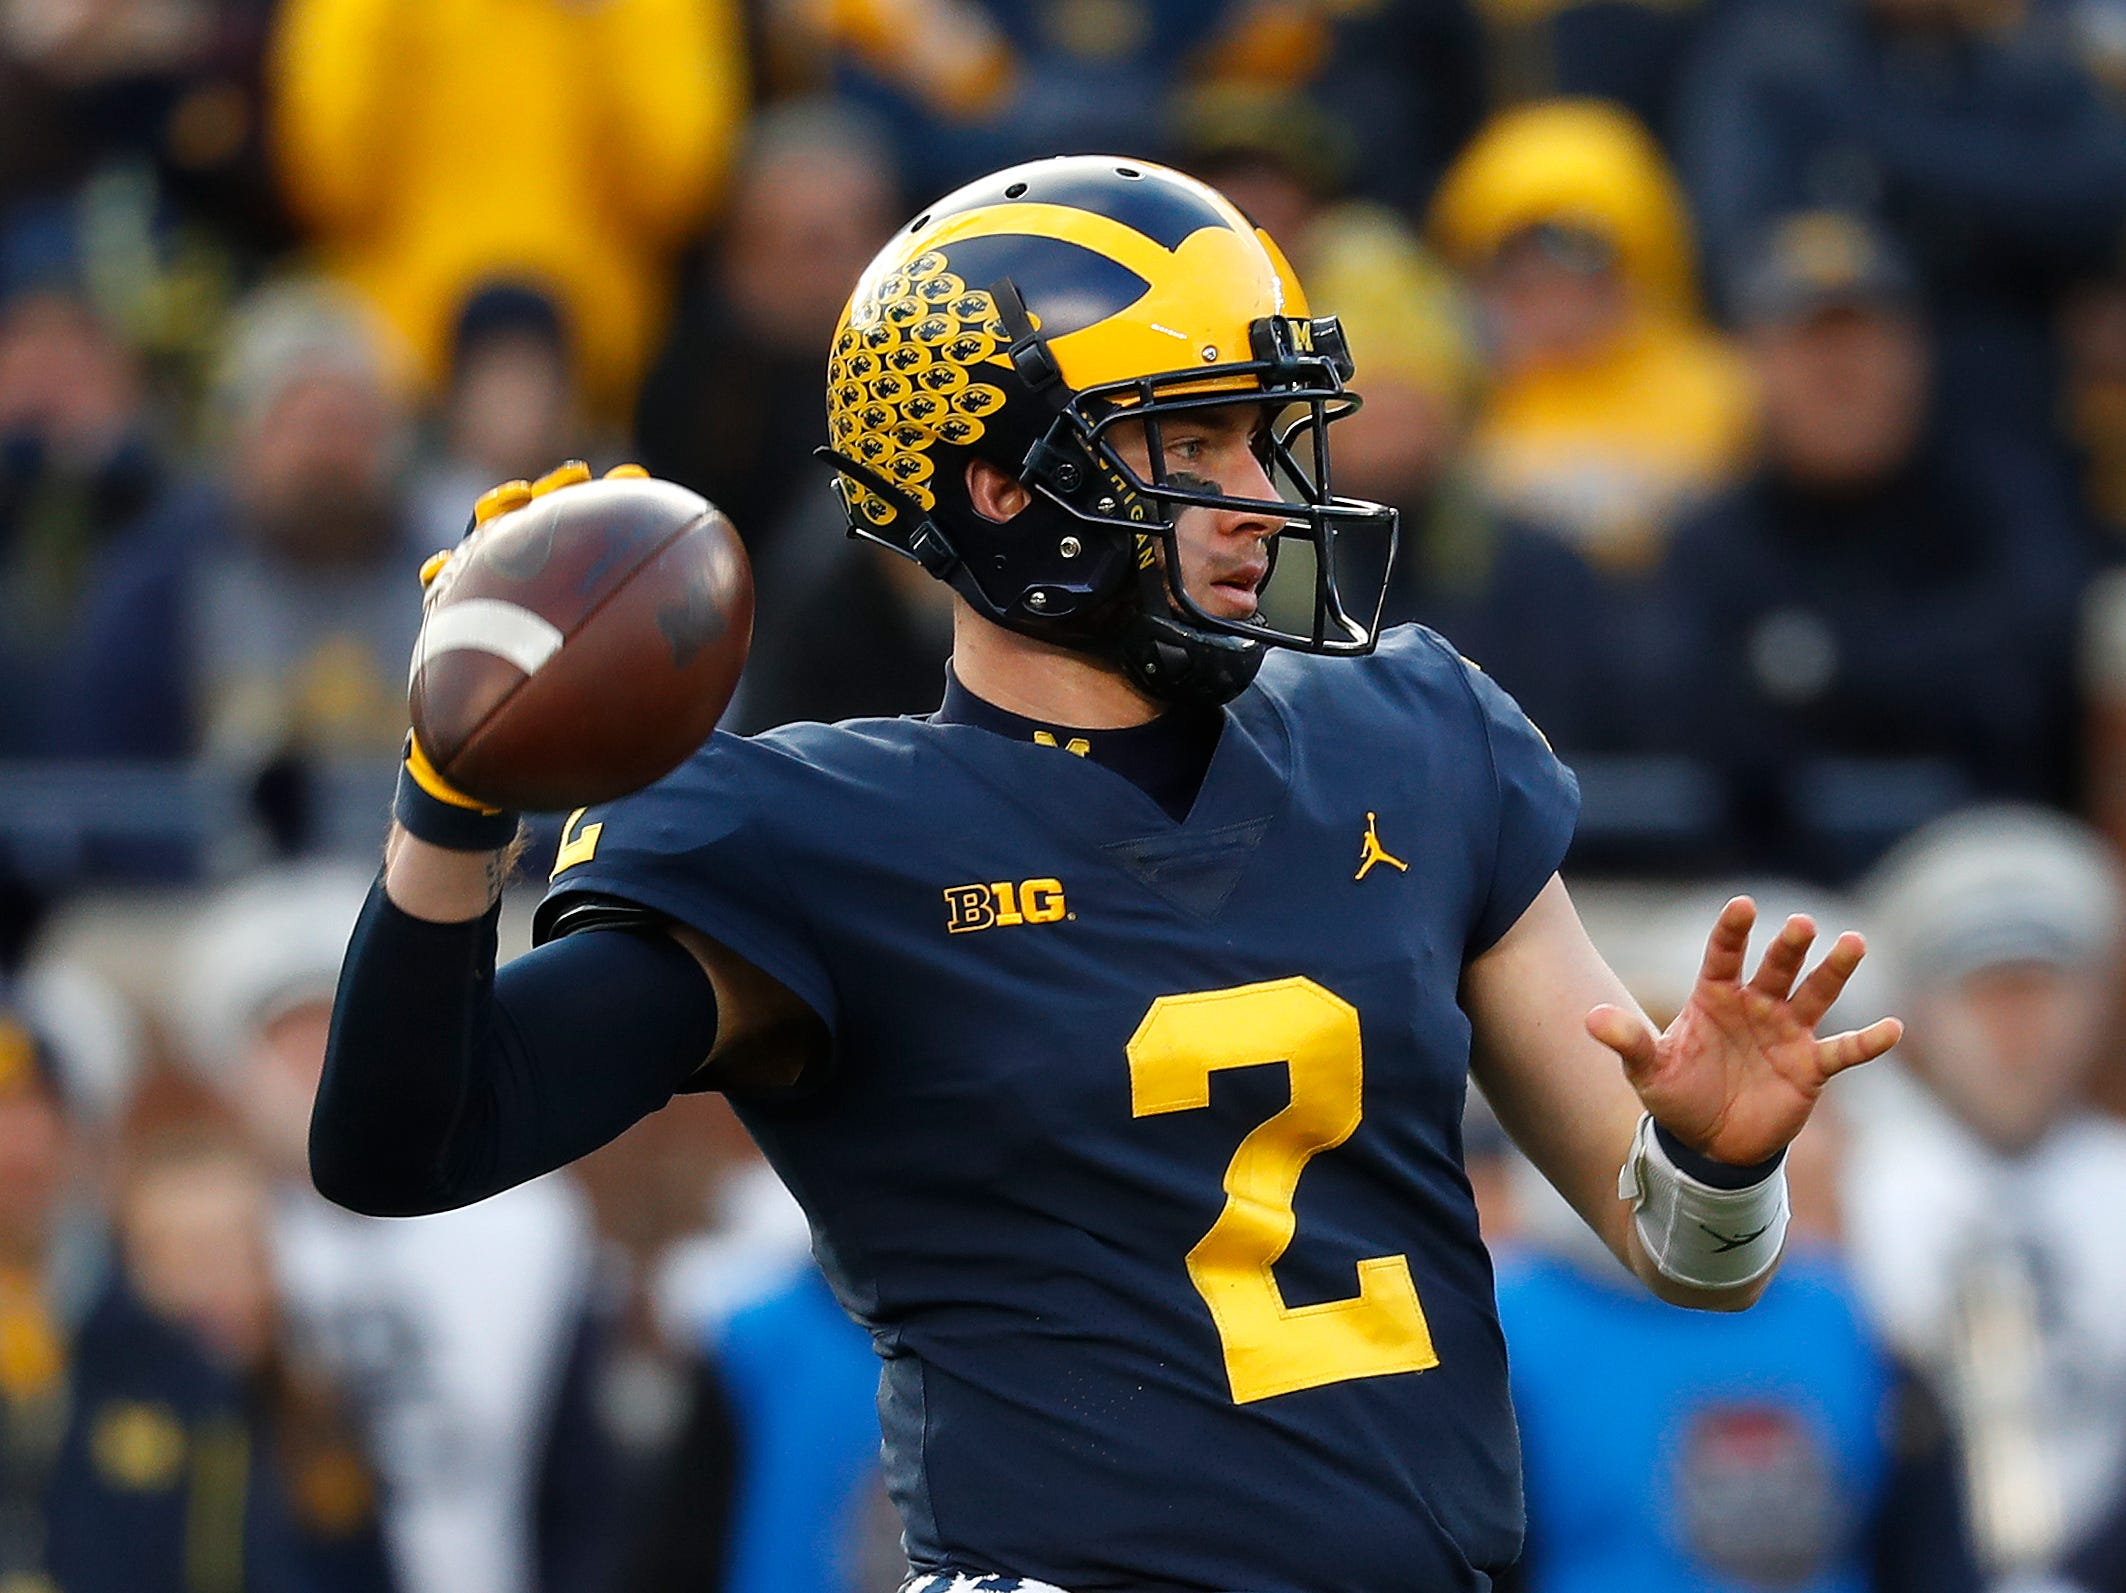 Michigan quarterback Shea Patterson throws against the Penn State in the first half of an NCAA college football game in Ann Arbor, Mich., Saturday, Nov. 3, 2018. (AP Photo/Paul Sancya)